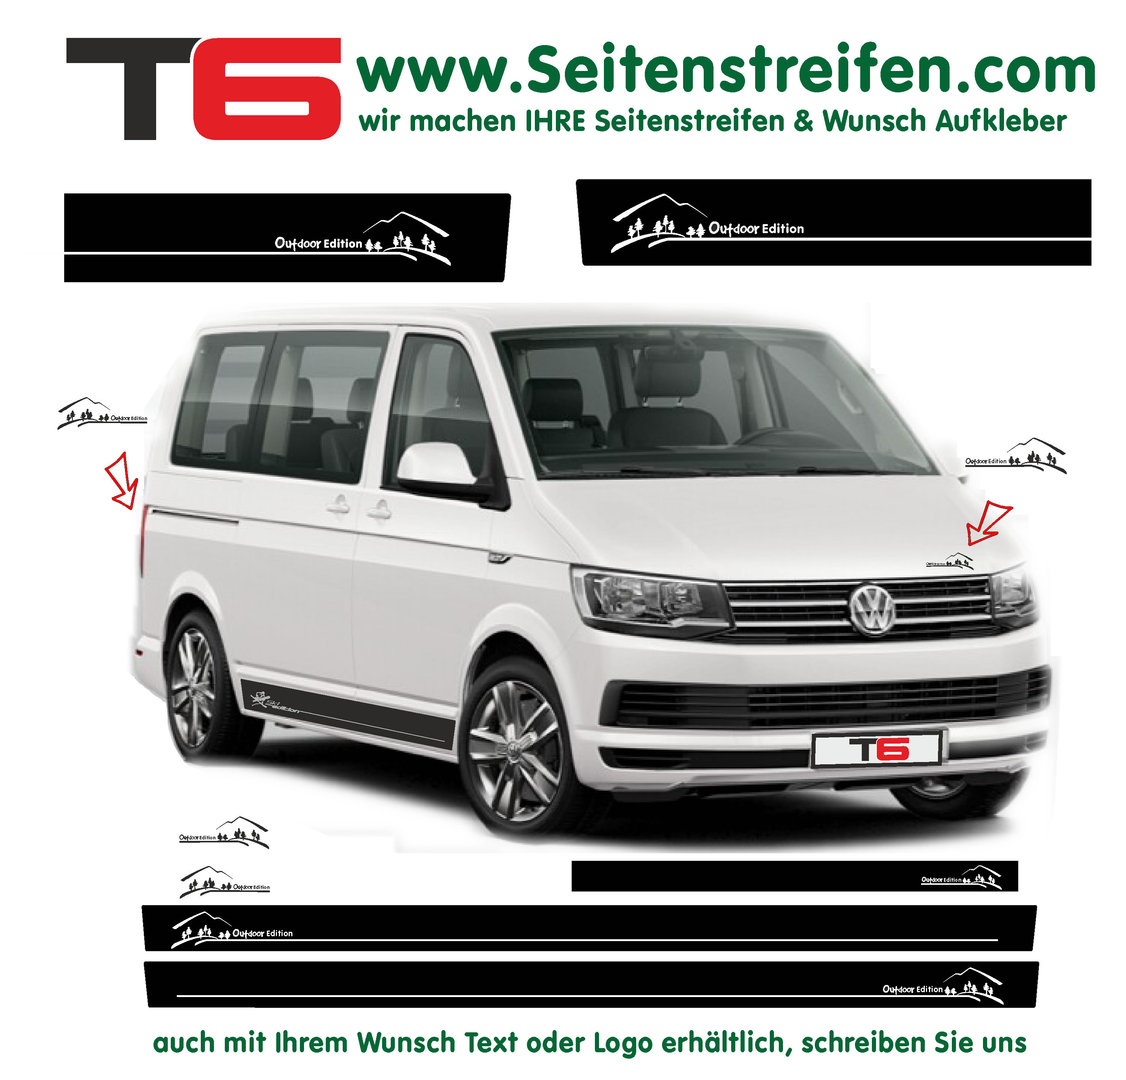 VW BUS T5 T6 Outdoor Edition Look Seitenstreifen Aufkleber Dekor  Komplett Set - Art.Nr.: 6678